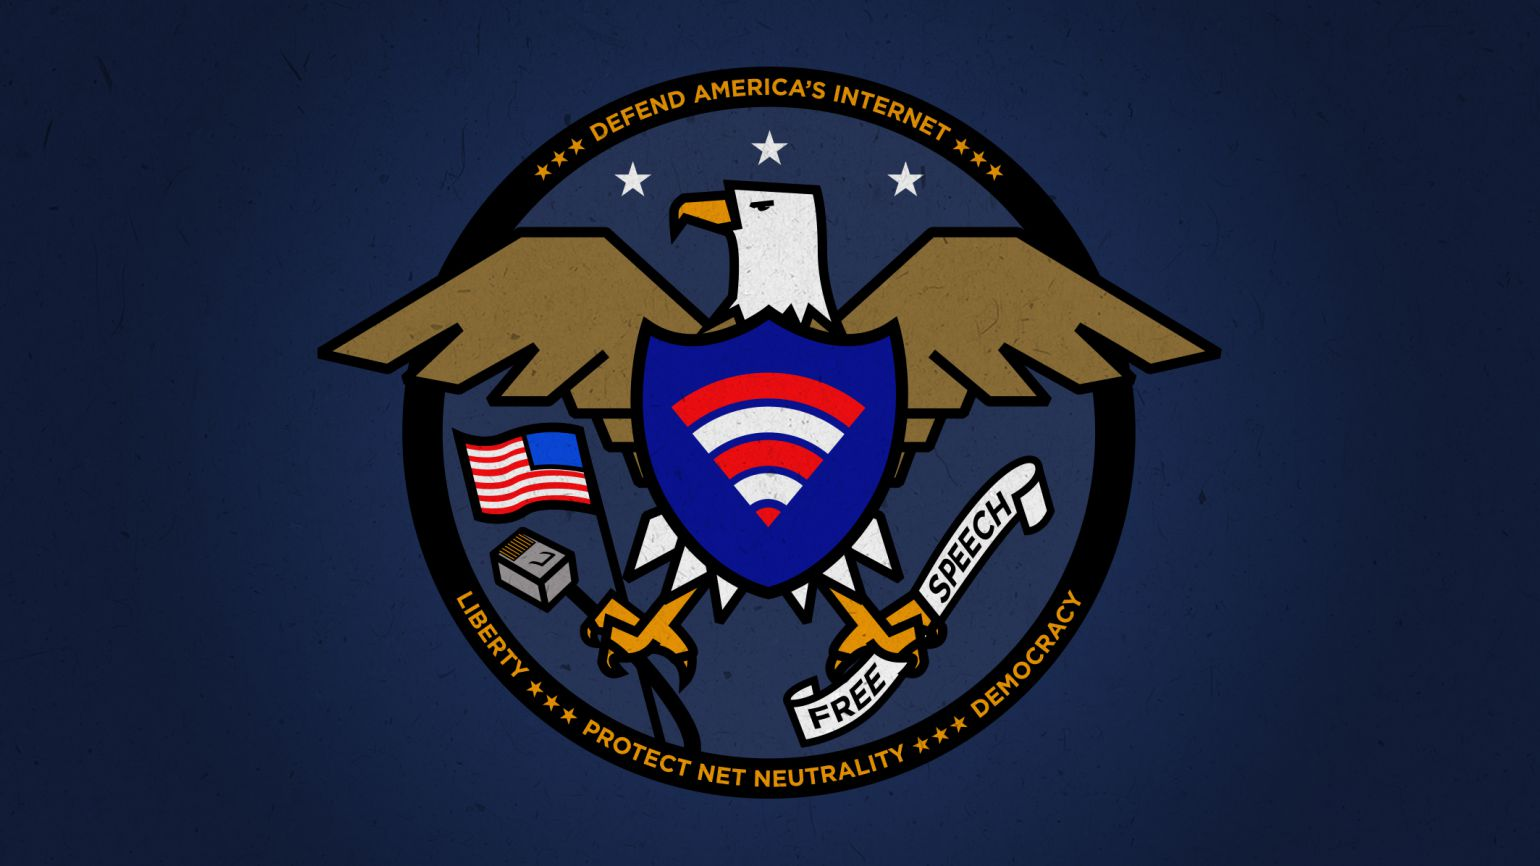 Defend America's Internet